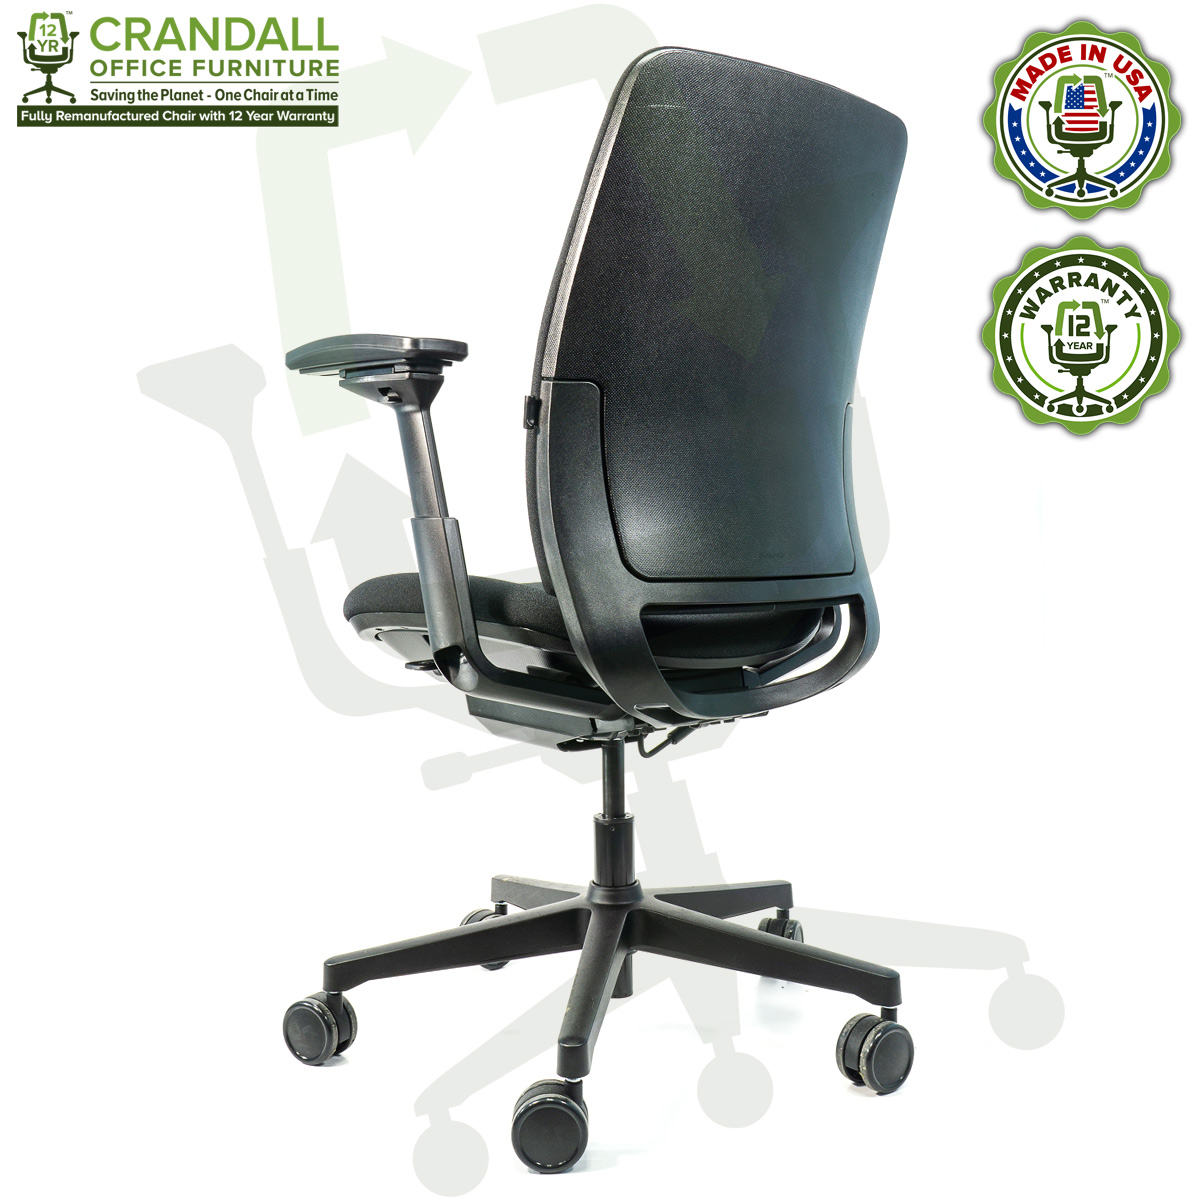 Crandall Office Furniture Remanufactured Steelcase Amia Chair with 12 Year Warranty - 04